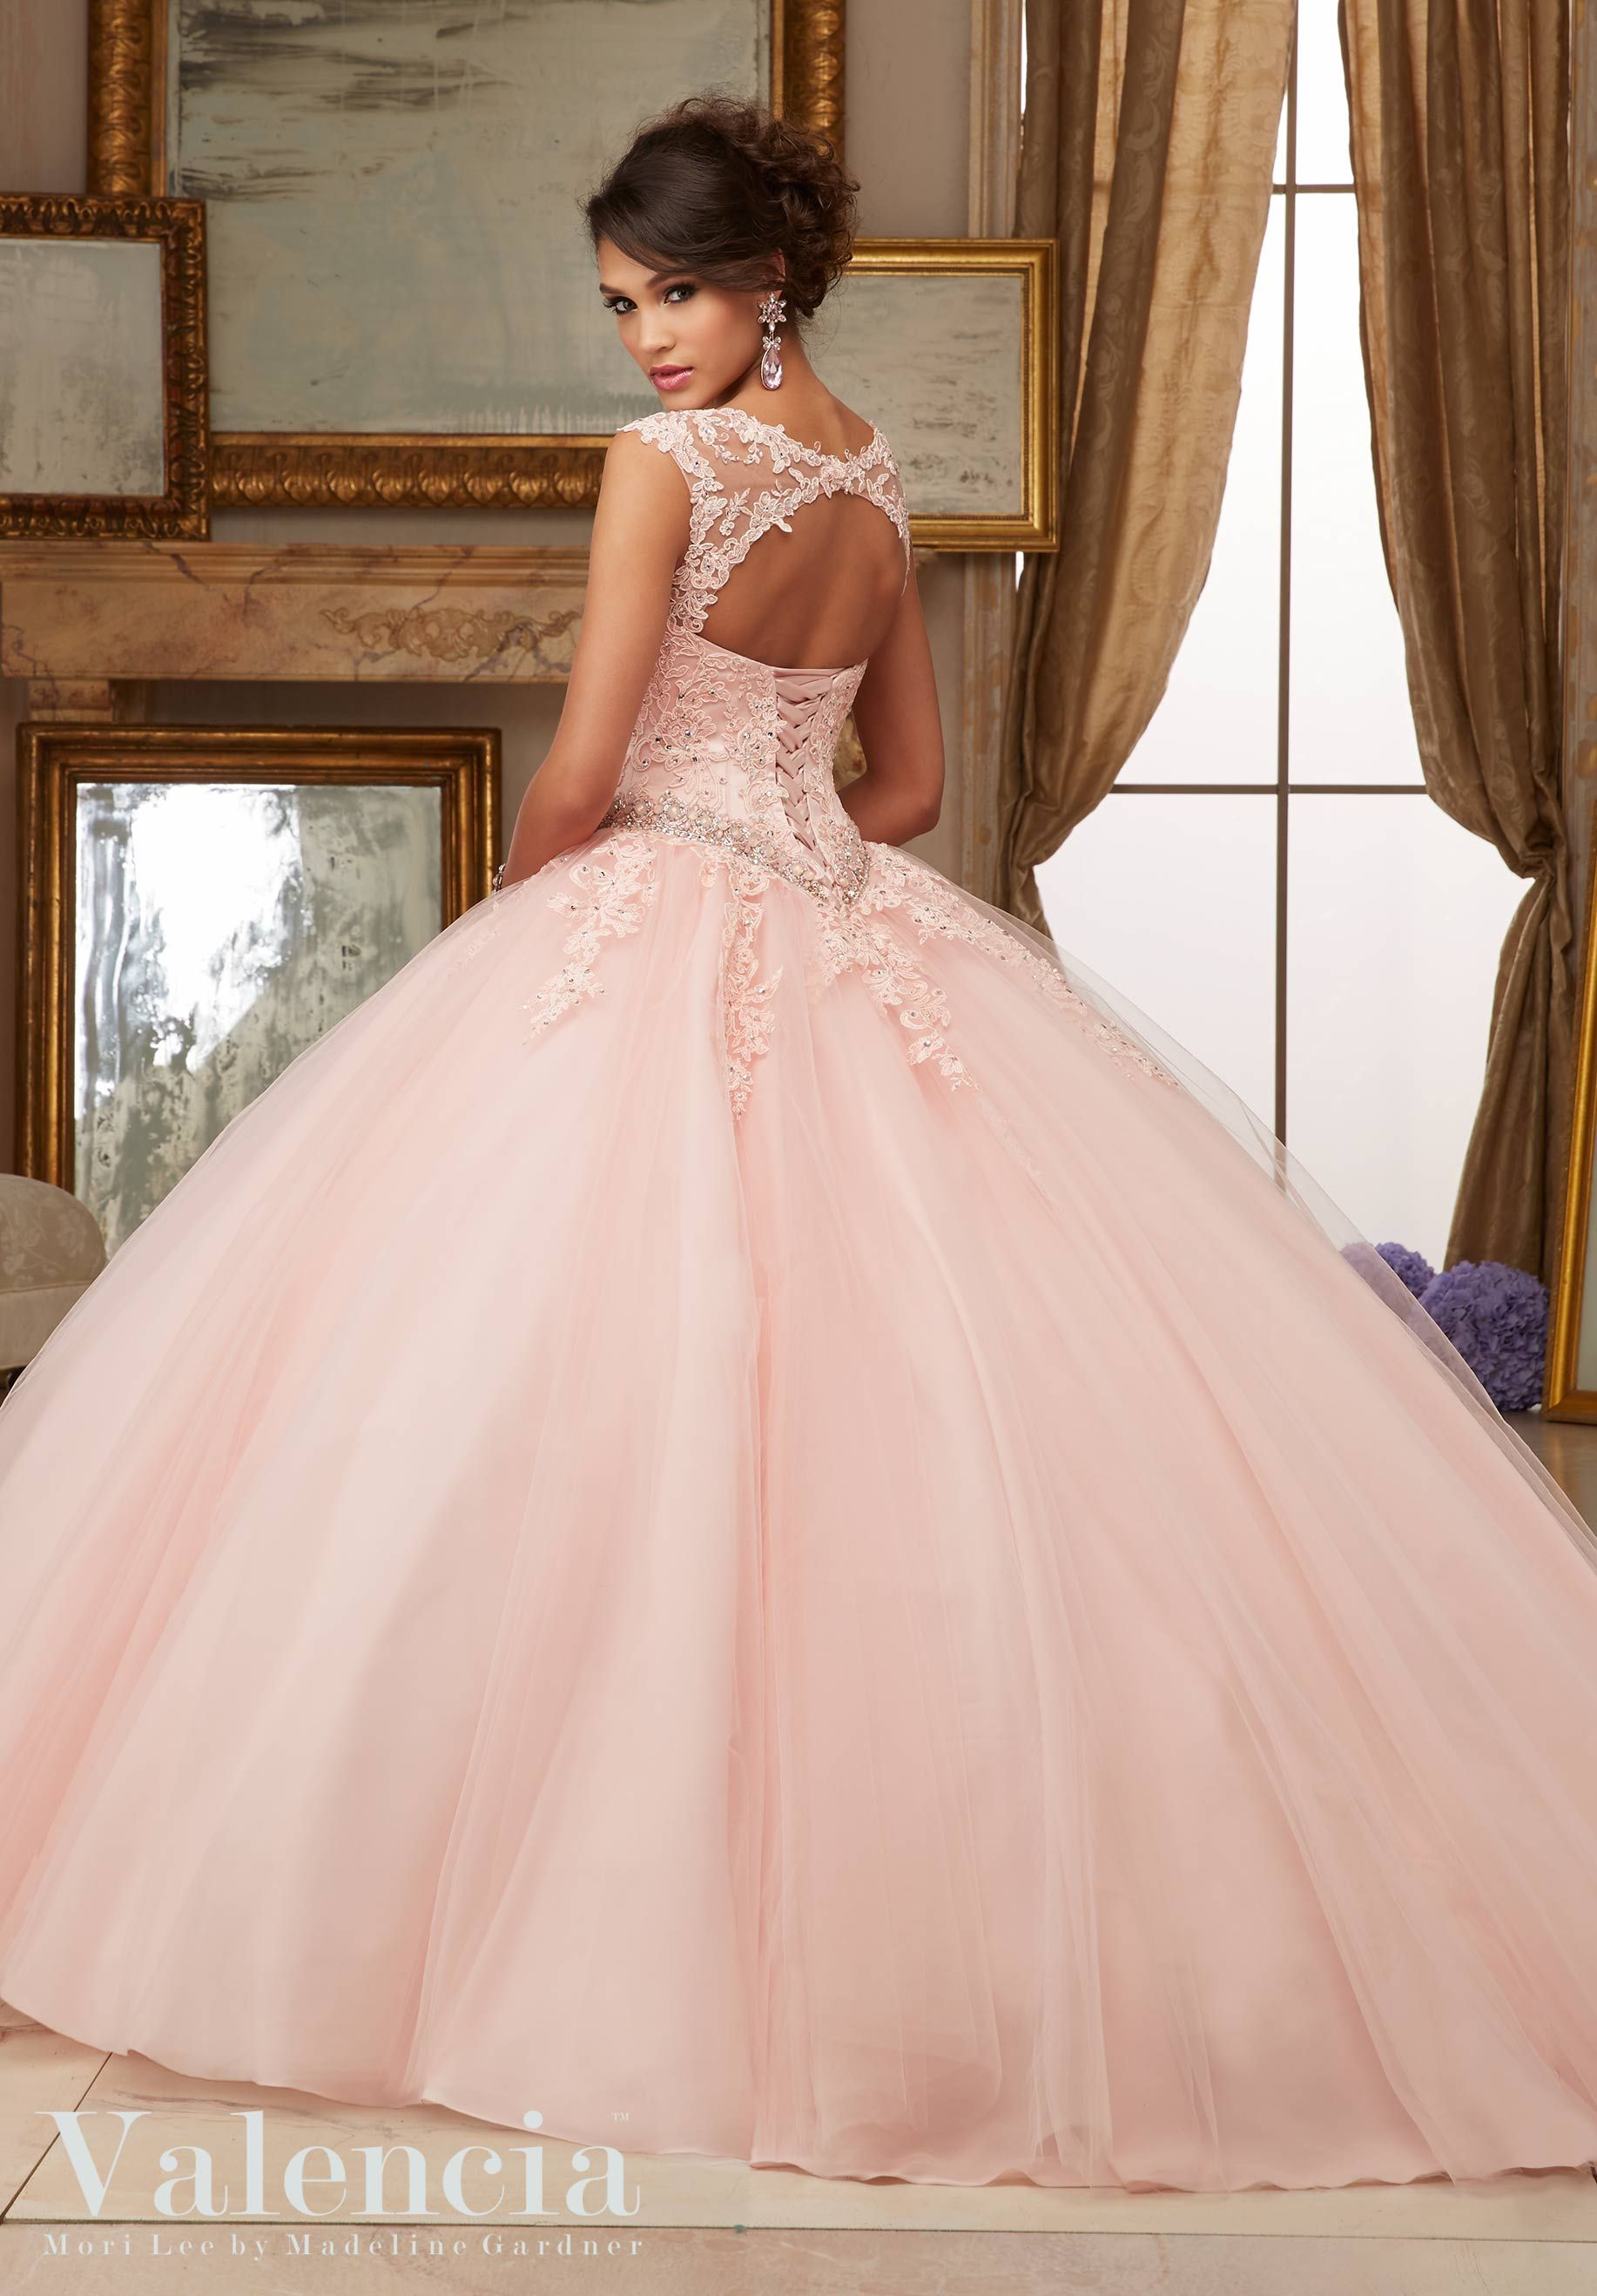 9dcfab570b Crystal Beaded Lace Appliques on Tulle Ball Gown Quinceanera Dress Designed  by Madeline Gardner. Matching Stole. Colors Available  Scarlet